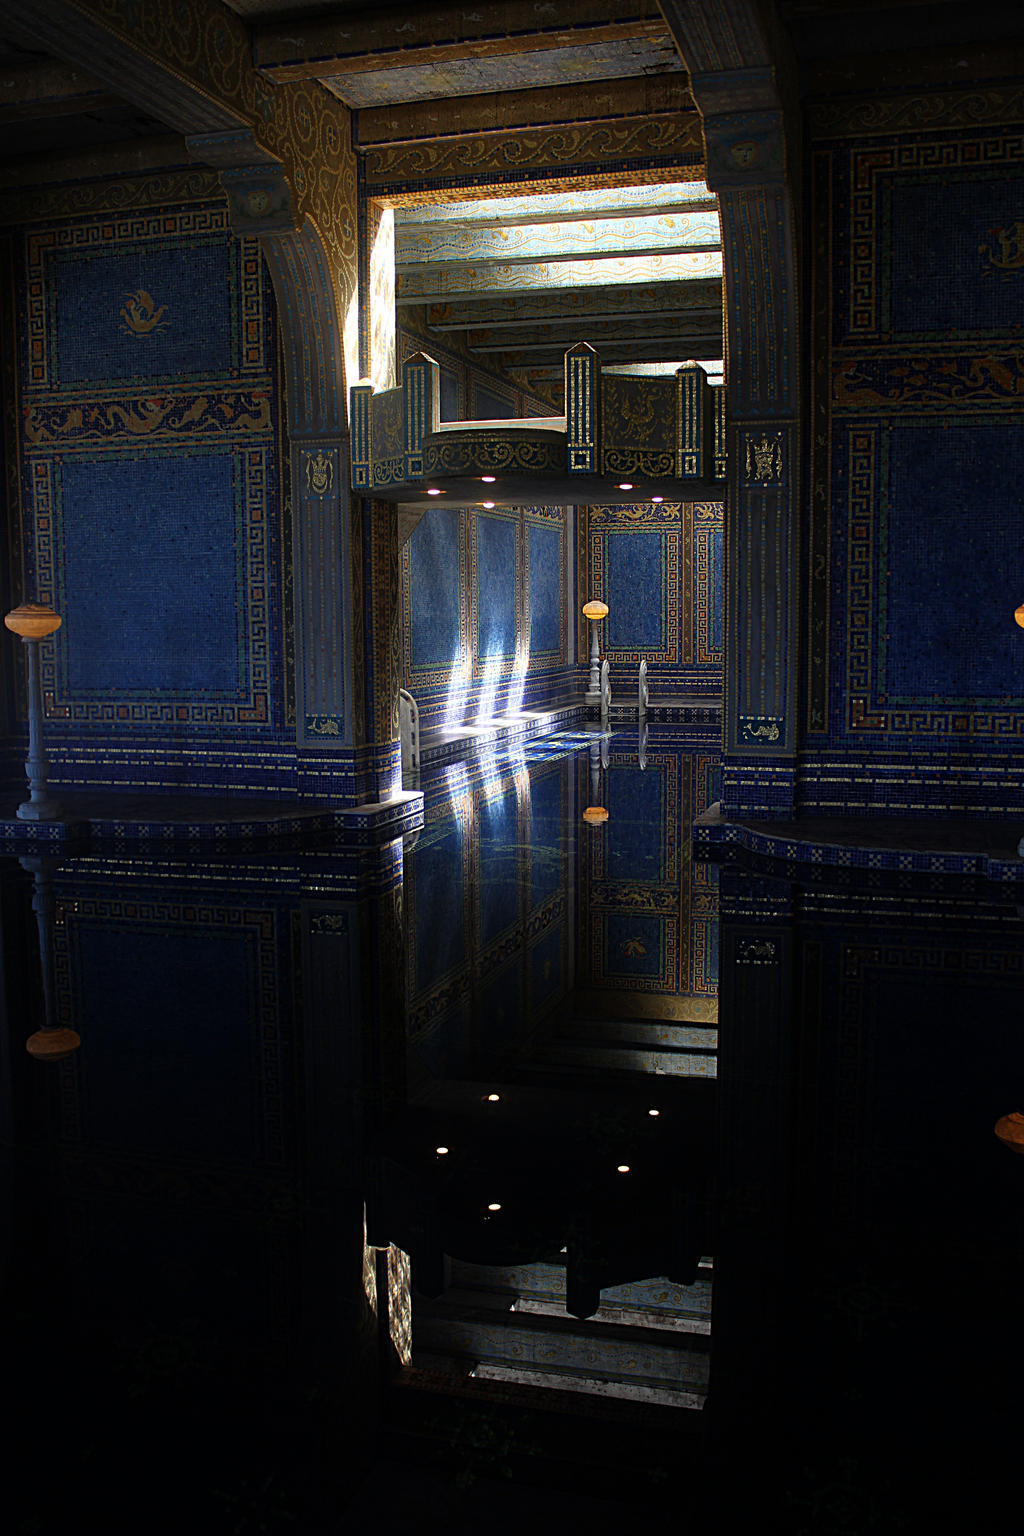 One of the indoor pools at Hearst Castle